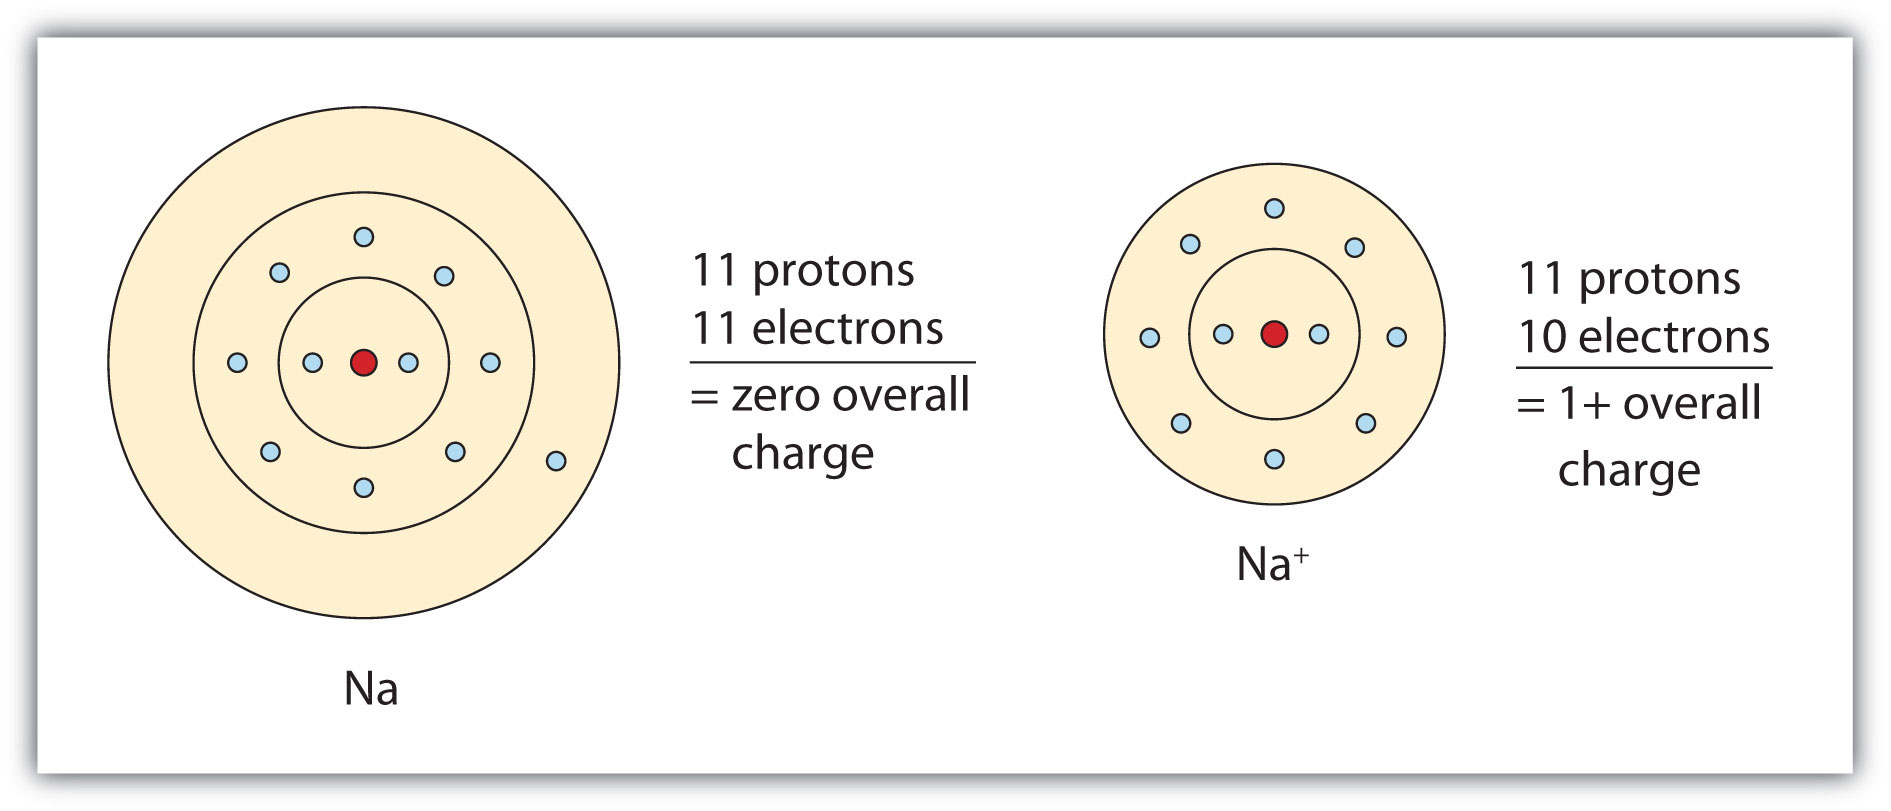 simple atom diagram general electric induction motor wiring molecules and compounds overview atomic structure article khan academy